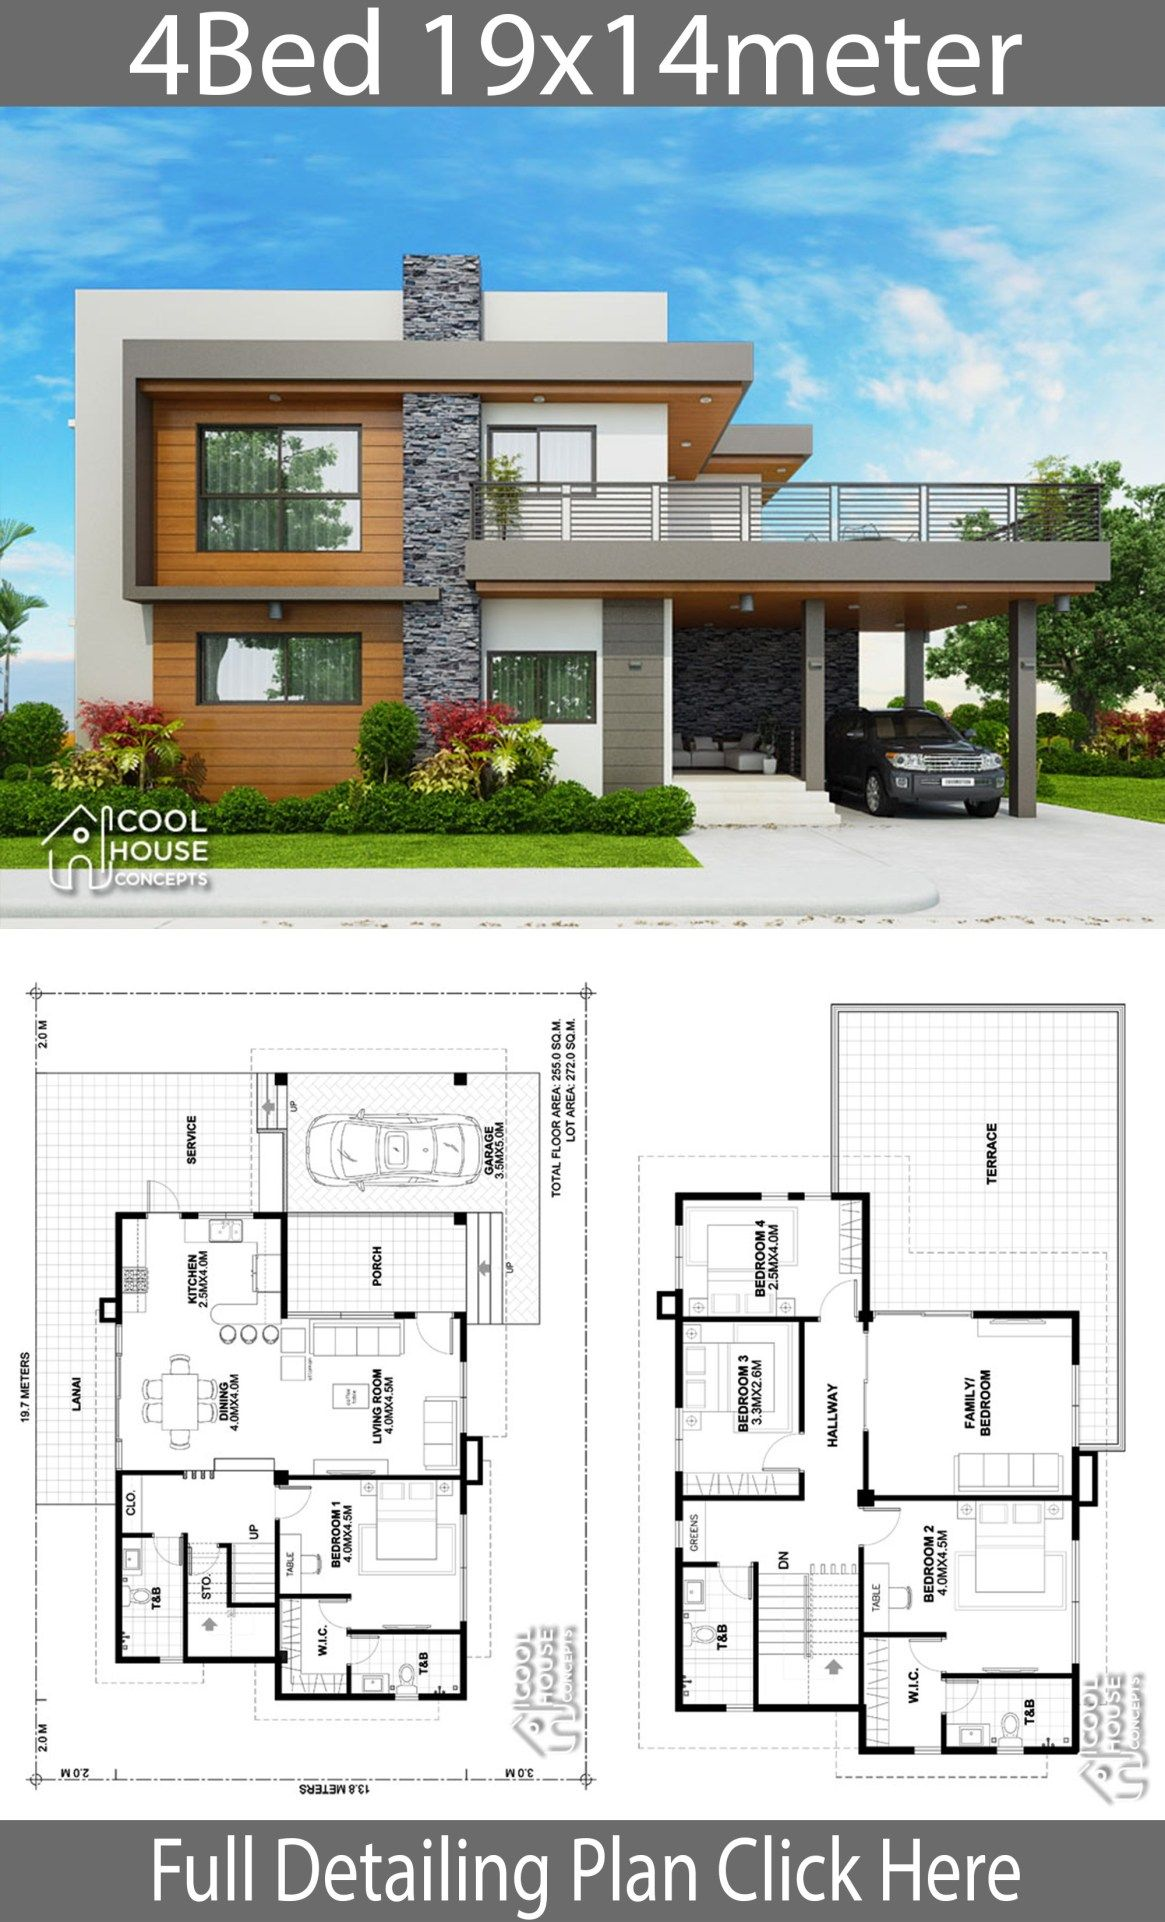 Home Design Plan 19x14m With 4 Bedrooms Home Design With Plansearch Duplex House Design Contemporary House Plans House Construction Plan